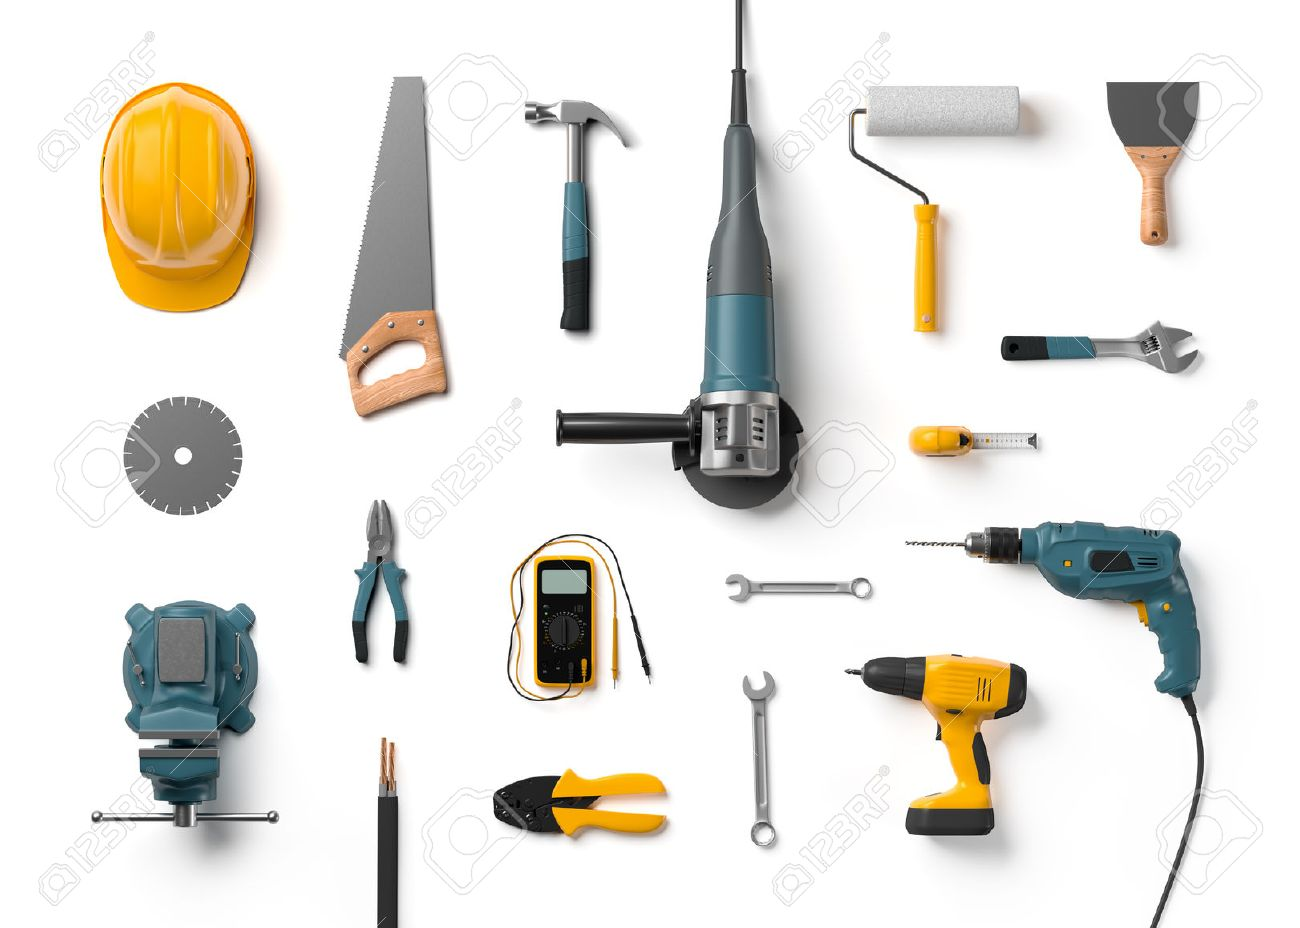 helmet, drill, angle grinder and other construction tools on a white background isolated - 57918222